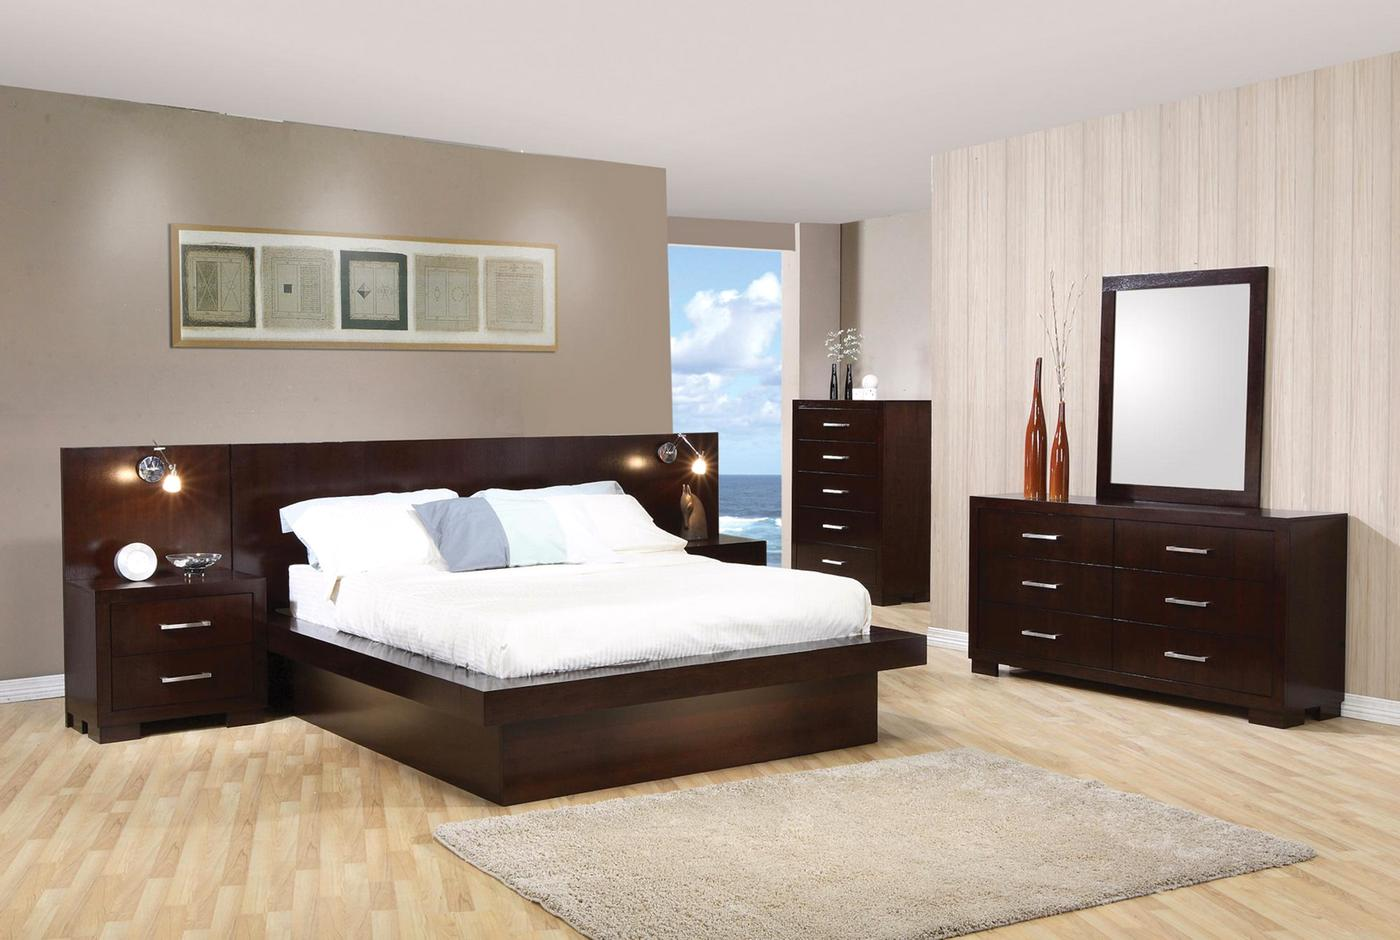 jessica modern platform cappuccino finish bedroom set free shipping. Black Bedroom Furniture Sets. Home Design Ideas